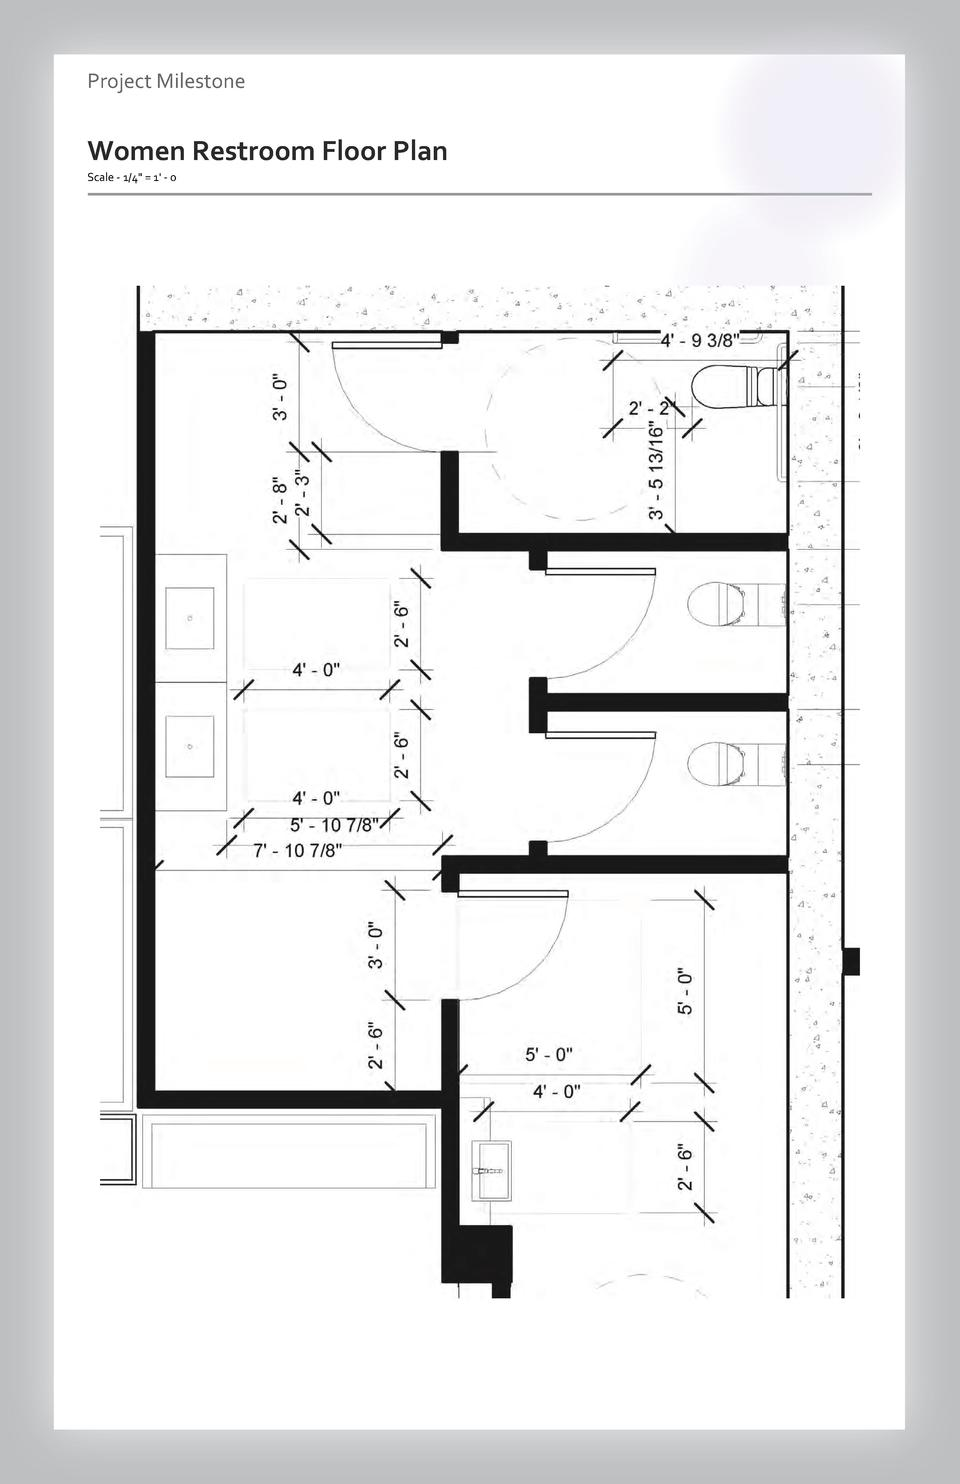 Case study Project Milestone - Aesthetics  Commercial Women Restroom Space Floor Wayfinding Plan Westfield Scale - 1 4 Val...